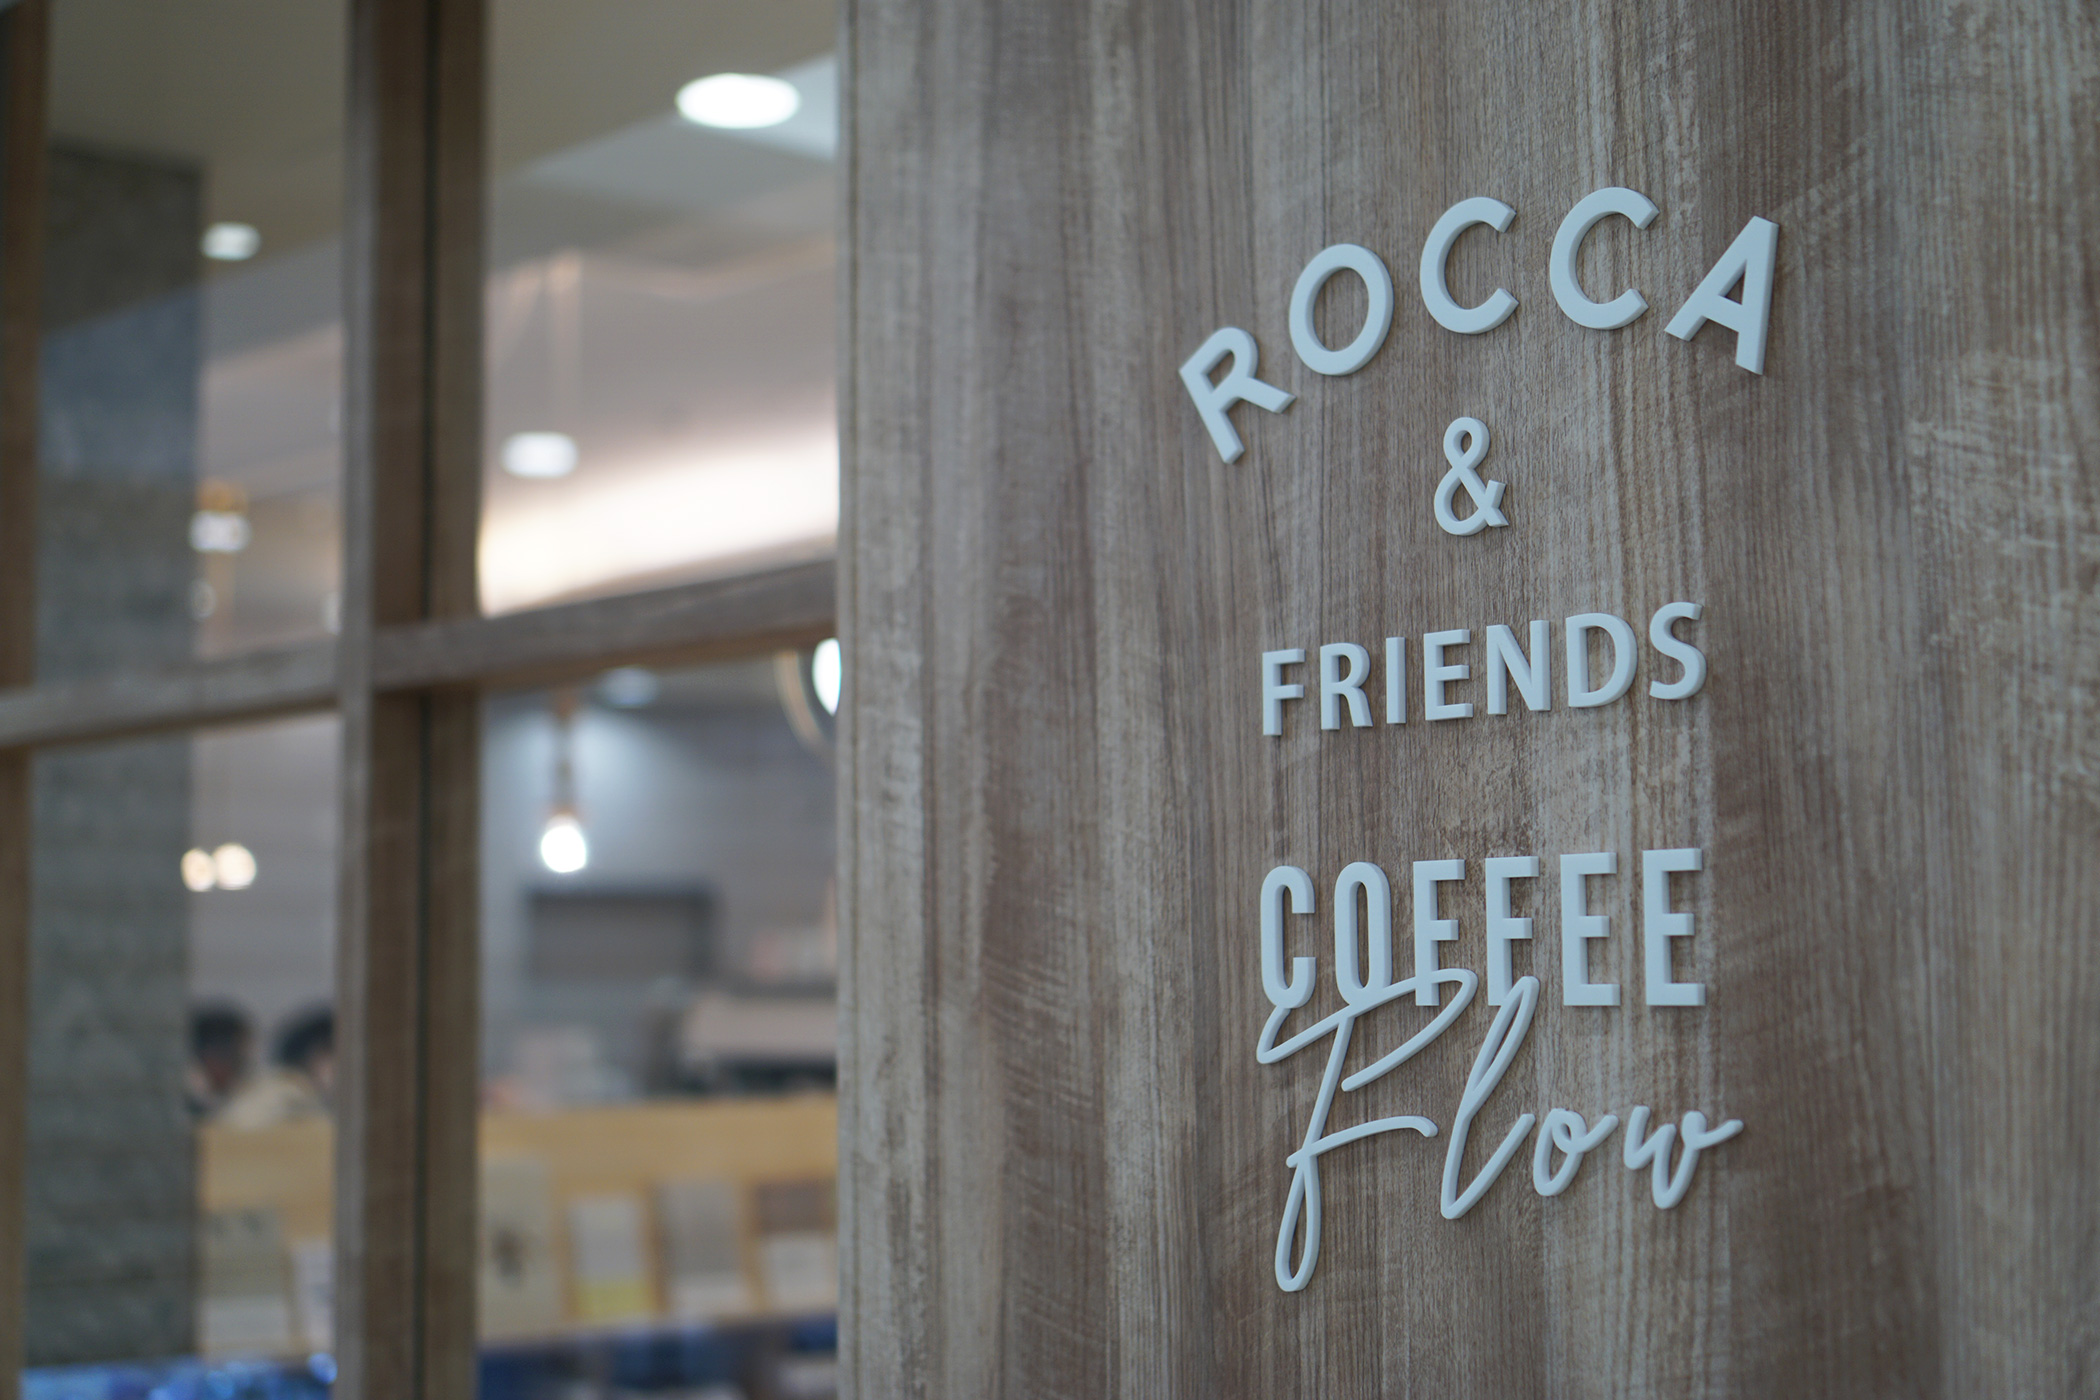 ROCCA & FRIENDS COFFEE Flow 女性がゆったりとコーヒーを楽しめる空間に